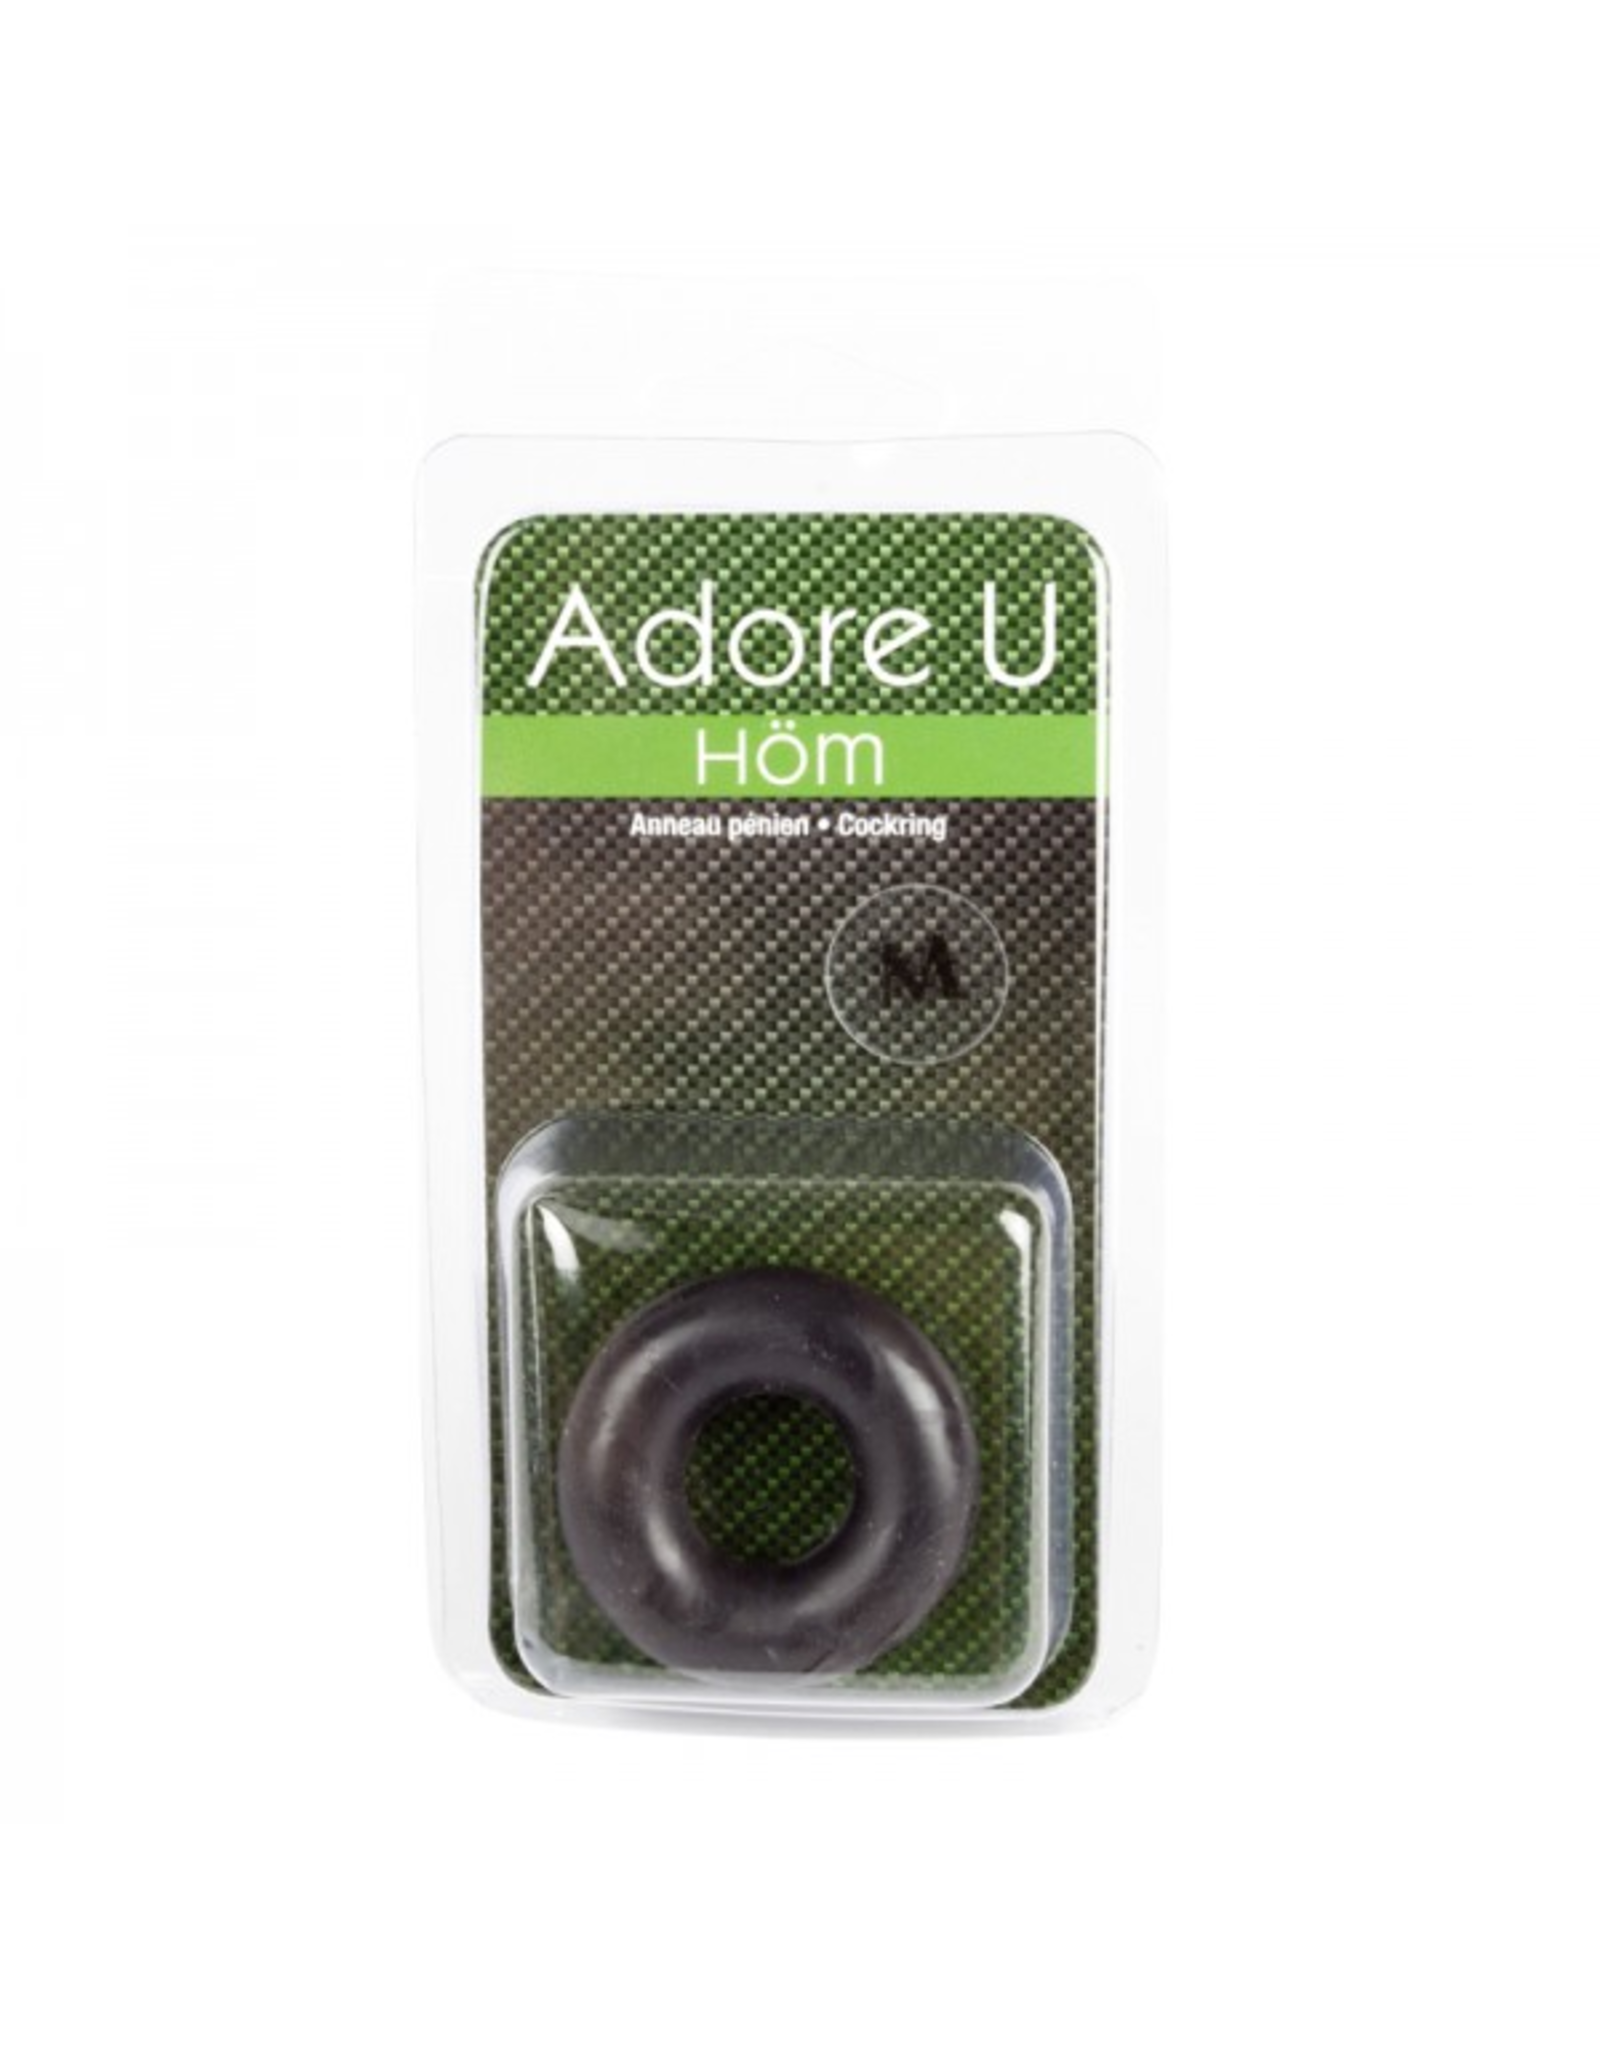 ADORE U HOM - MEDIUM C-RING - BLACK